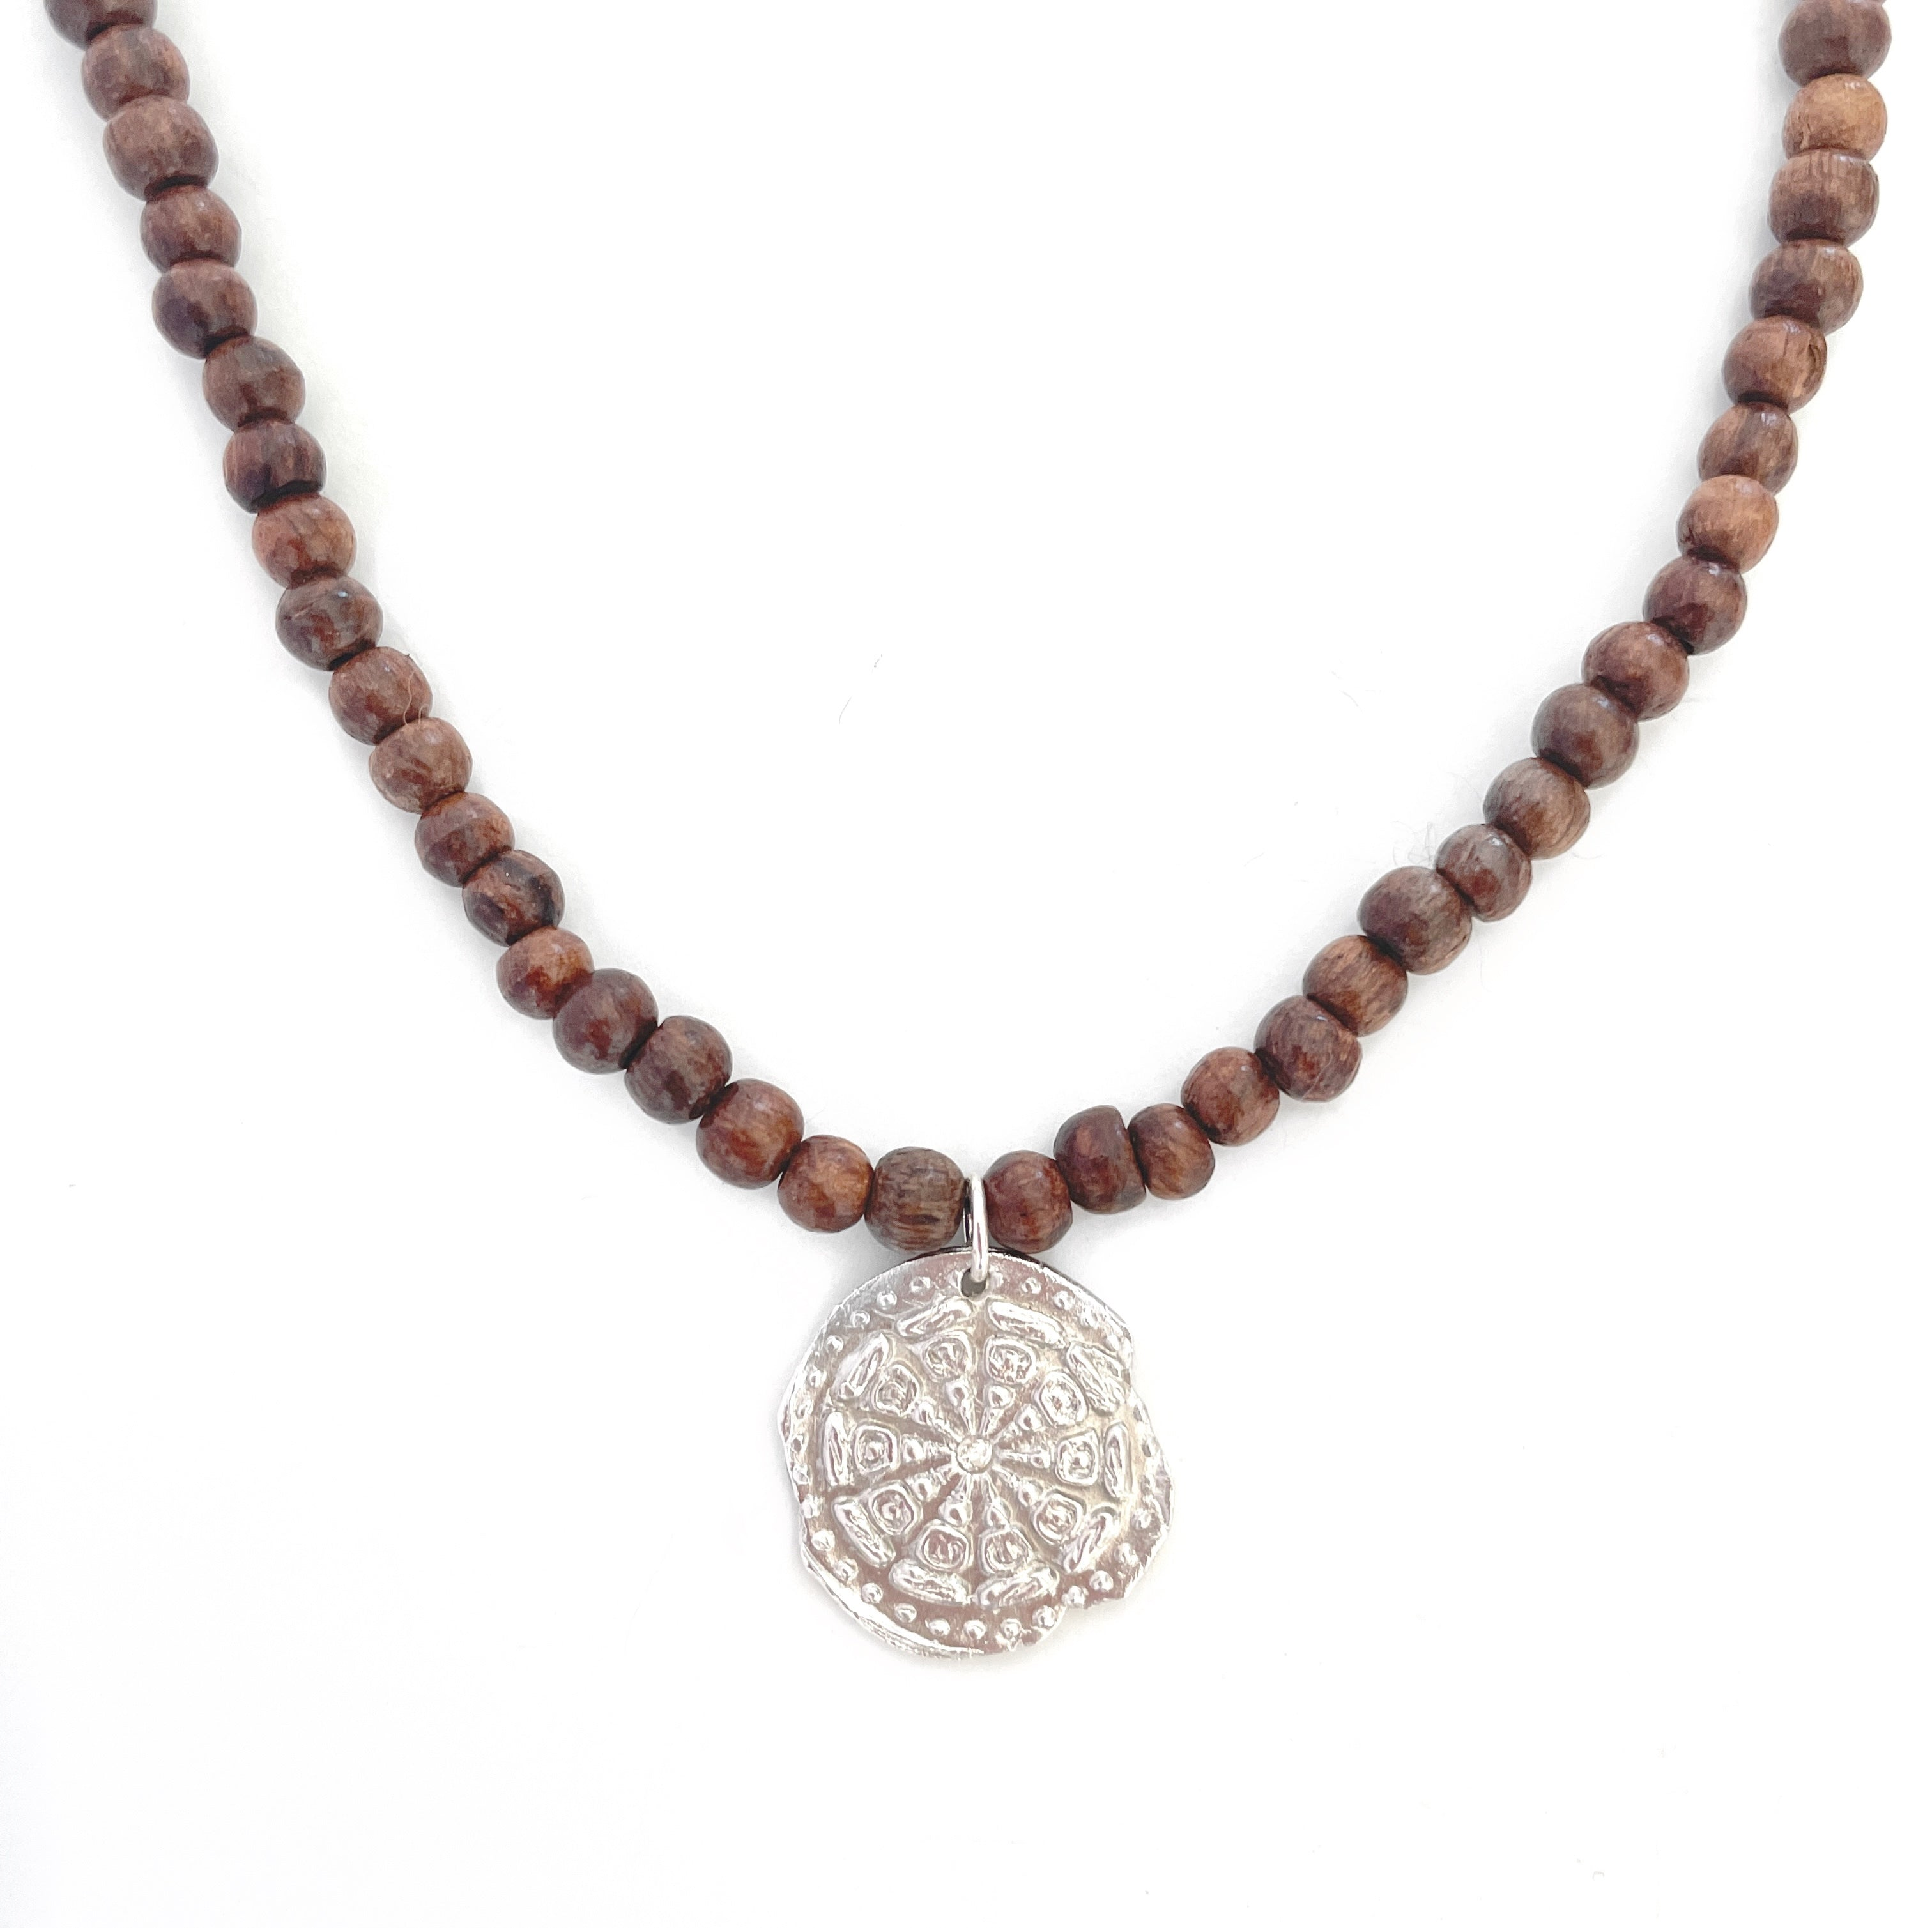 One of a Kind Silver Wheel of Life Charm on Wood Bead Necklace 20078